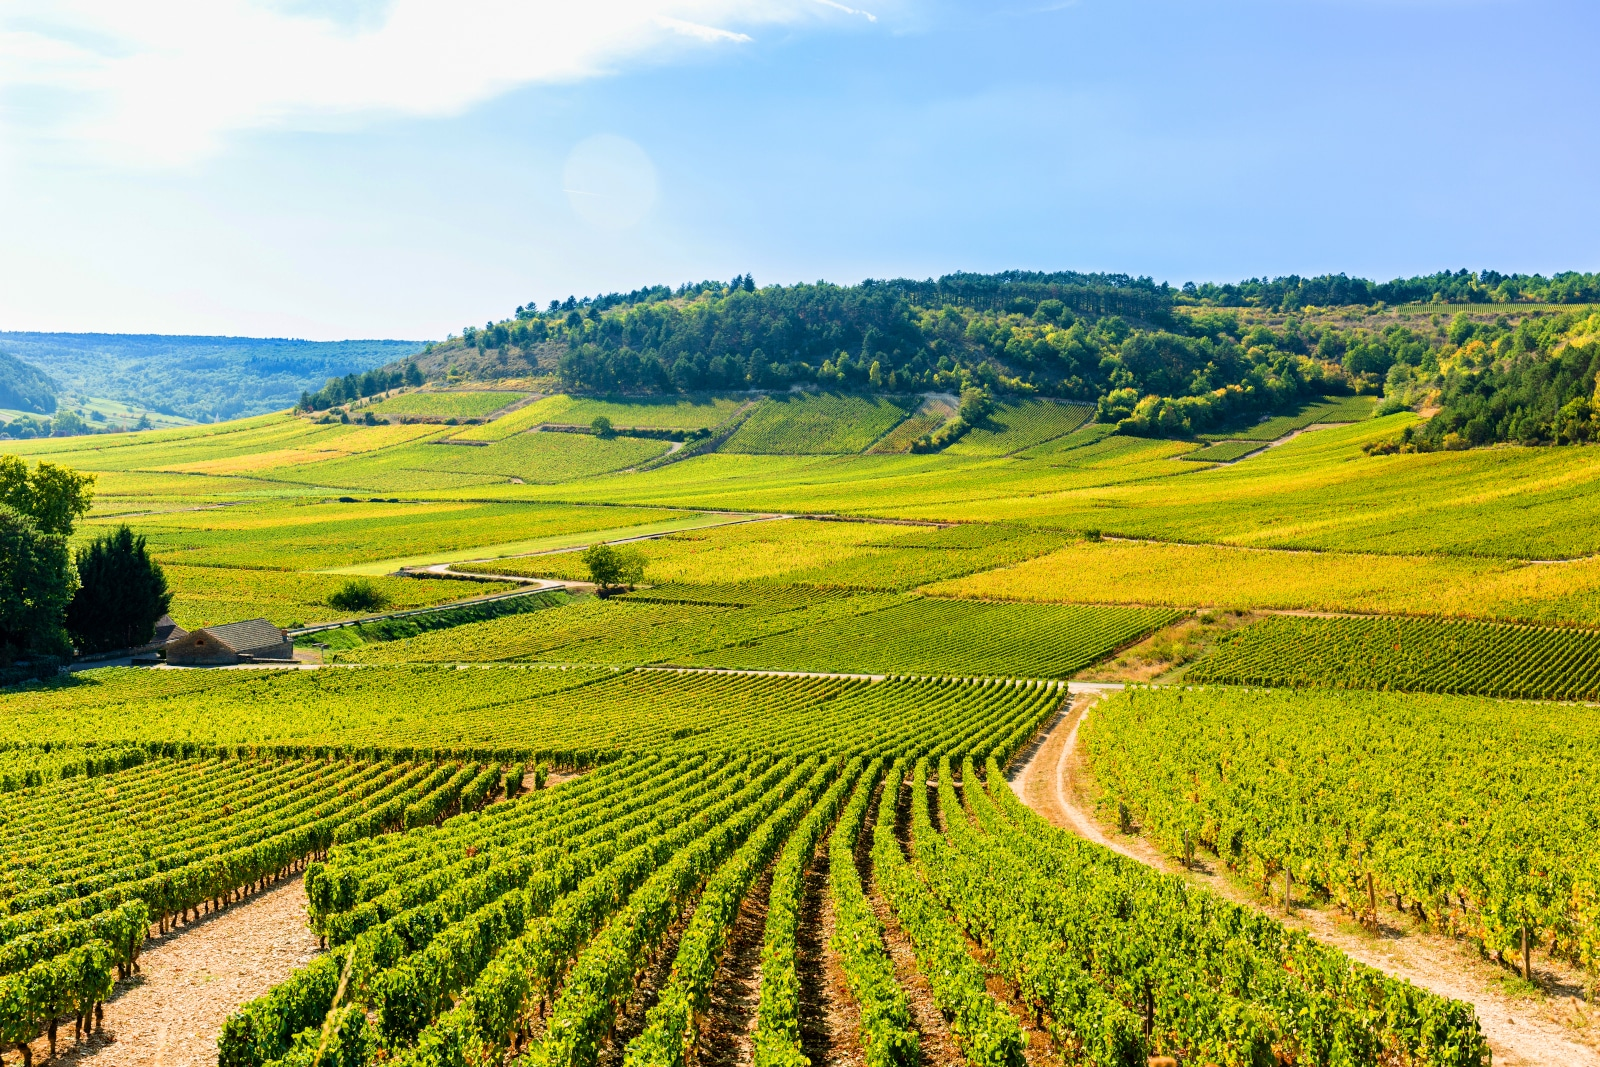 Where Does Chardonnay Come From